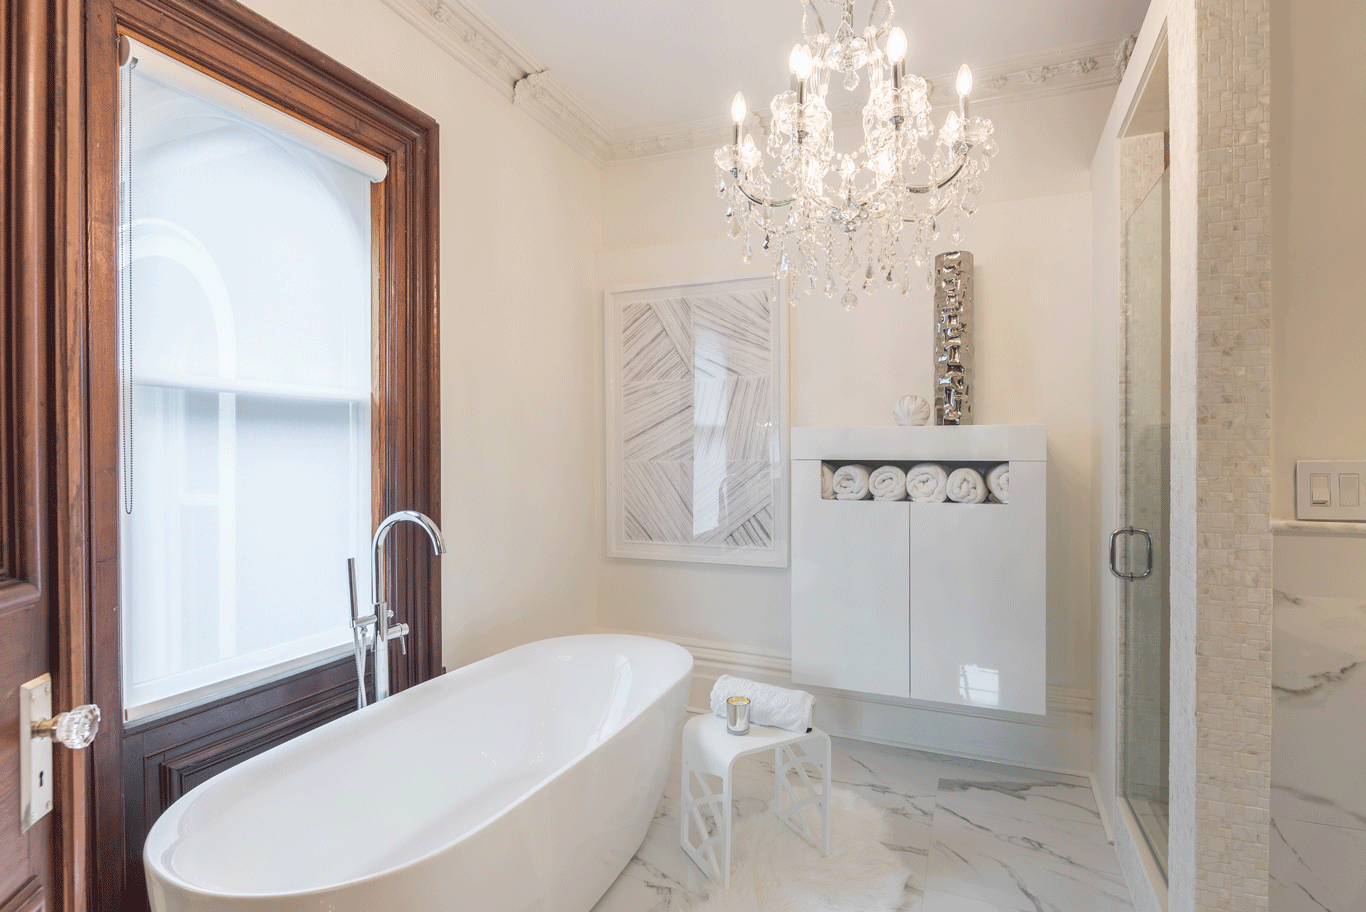 Bath Room, Ceiling Lighting, Freestanding Tub, and Enclosed Shower The master bath has white marble flooring with a large soaker tub, walk in shower and mother of pearl tile surround. The vanity has a white quartz top with crystal handles on the faucets.  The Empress by Peggy Aleksiejuk